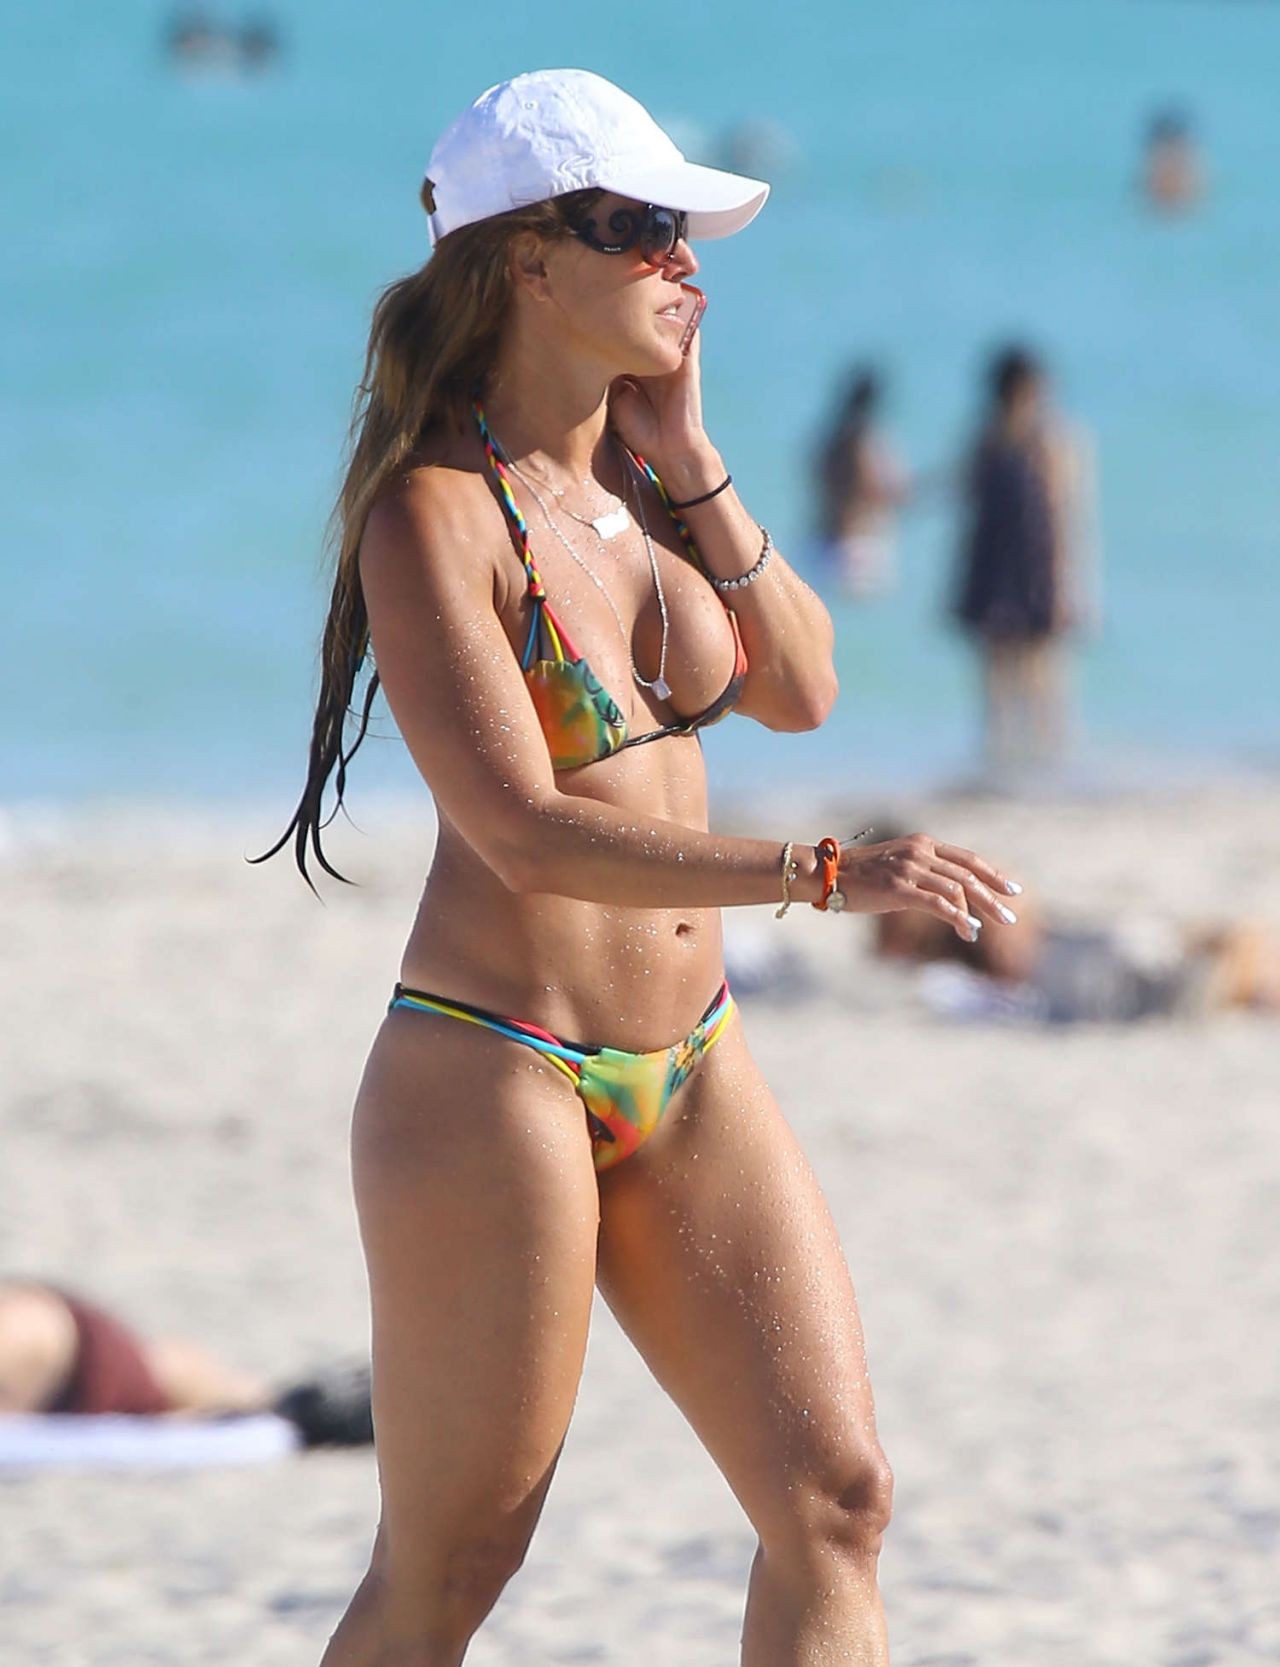 Cristy Rice in Teeny Bikini - Miami Beach - March 2014